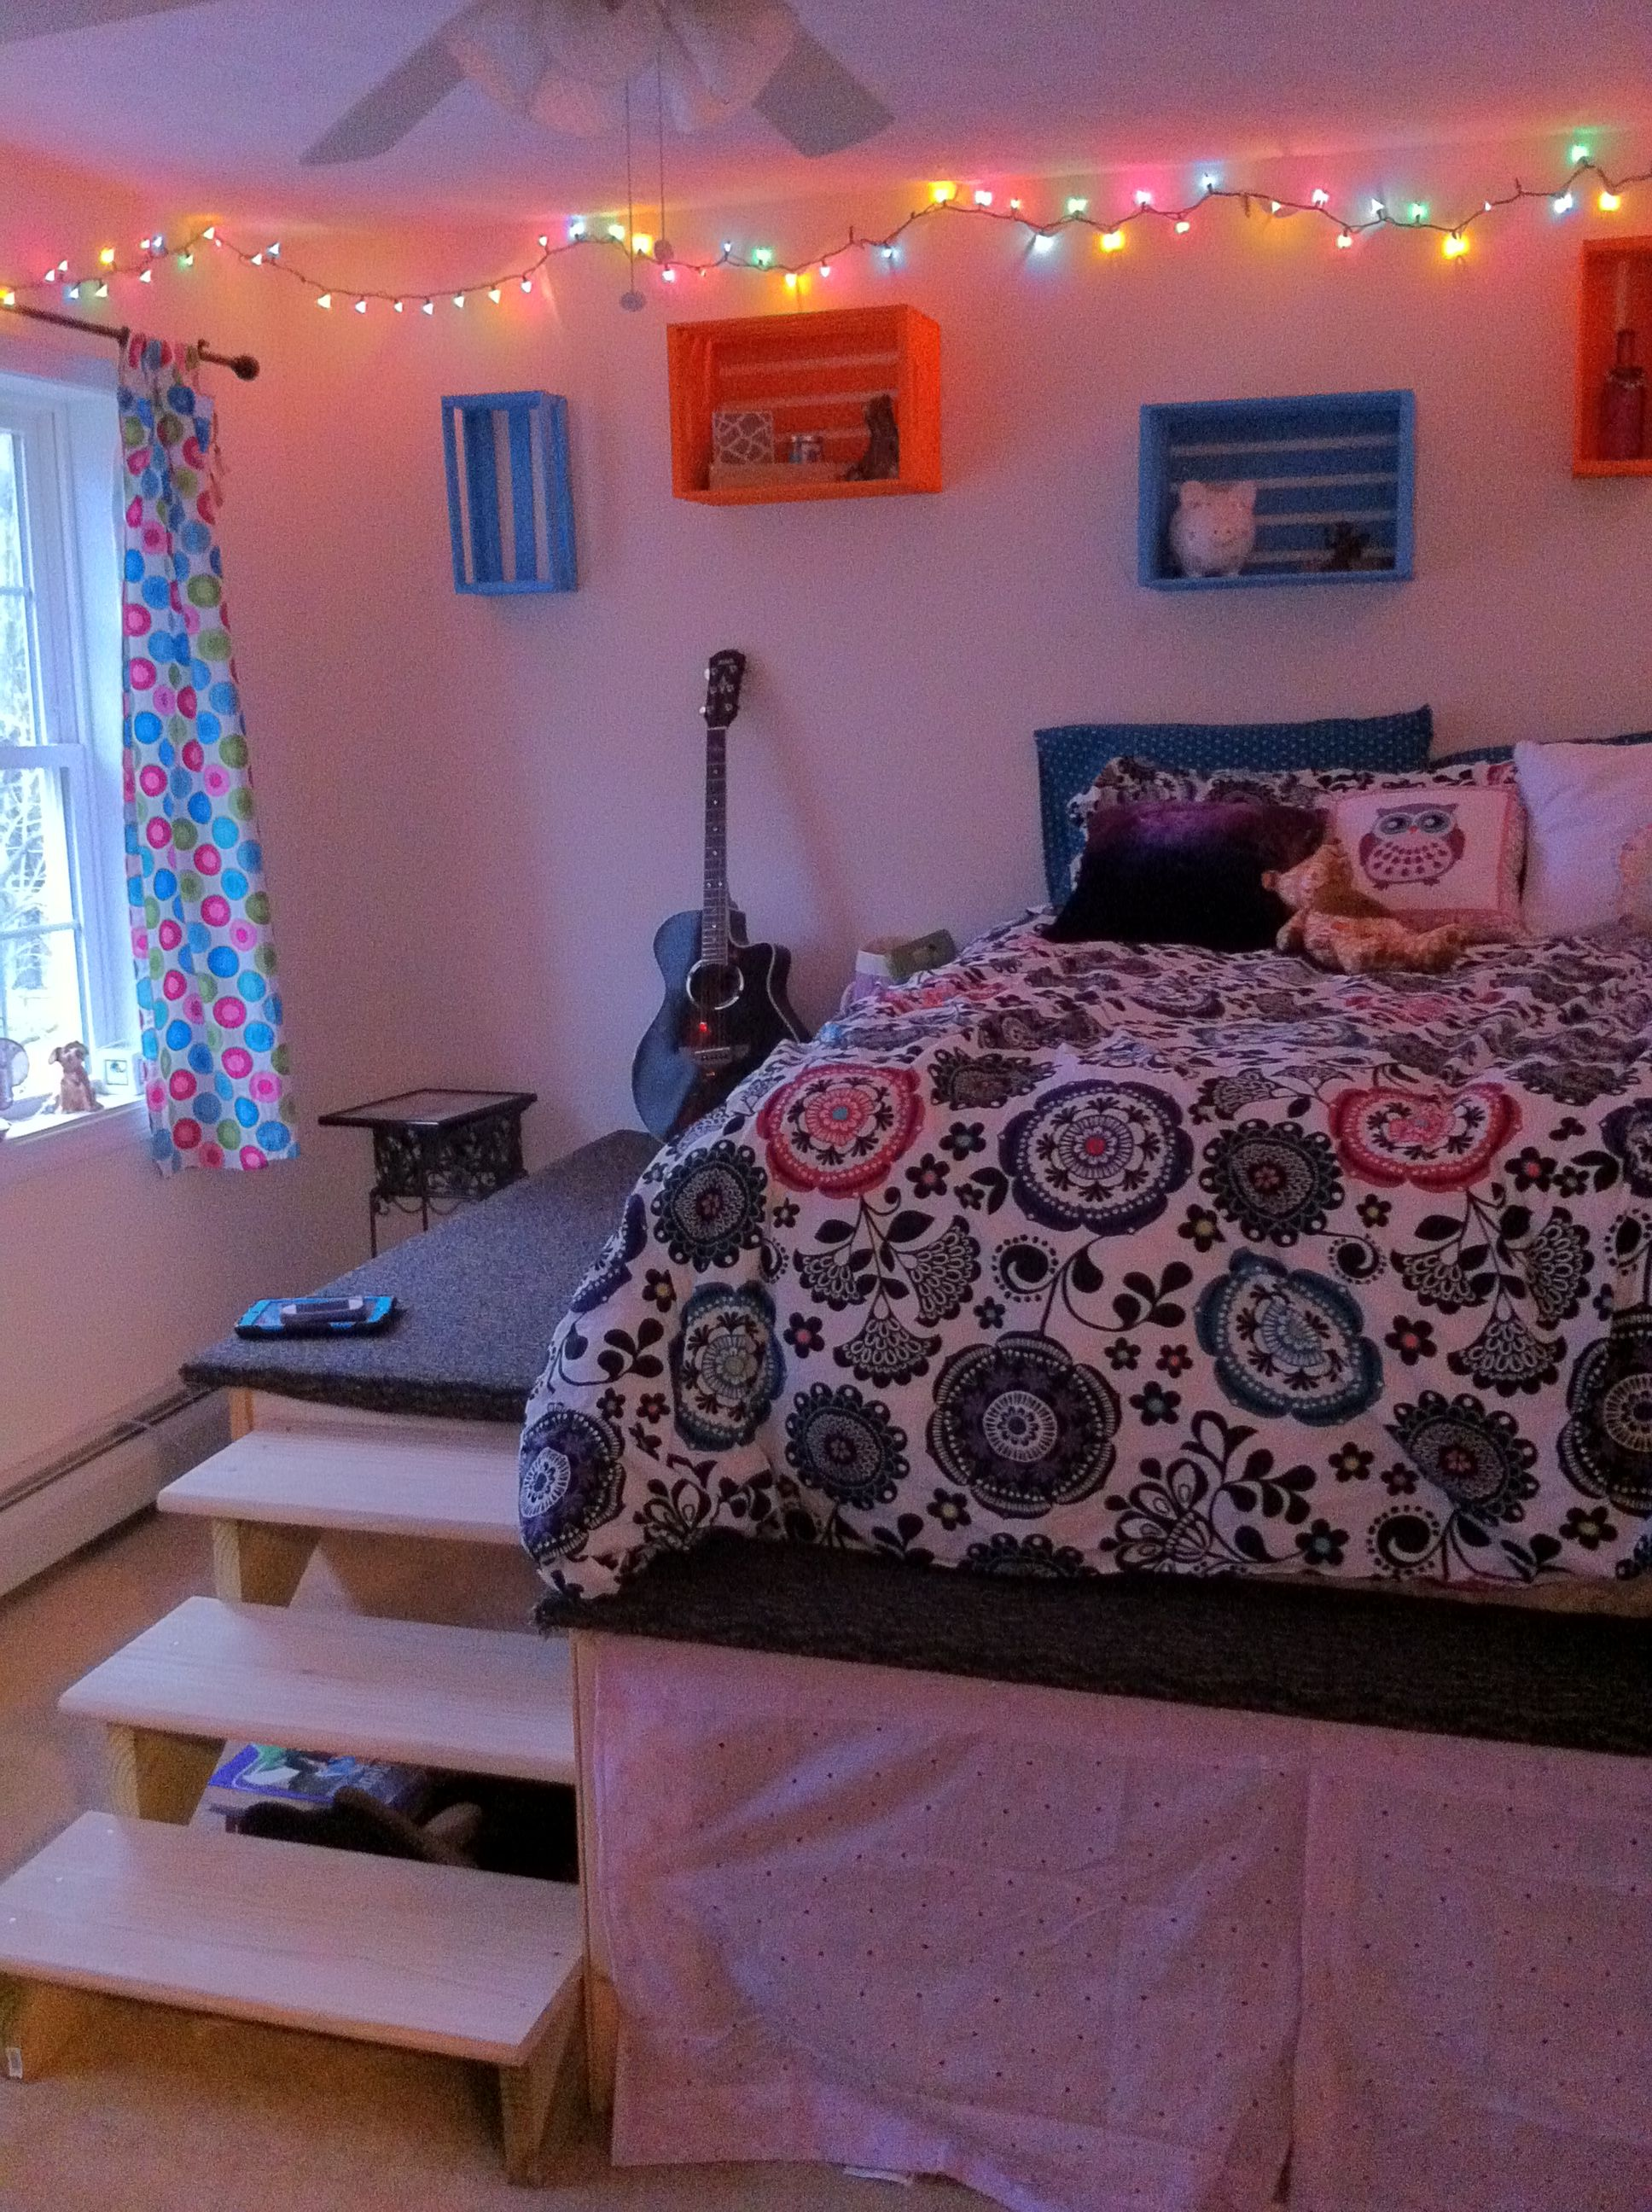 Bed On A Raised Platform Teenager Decor Ideas Room Inspiration